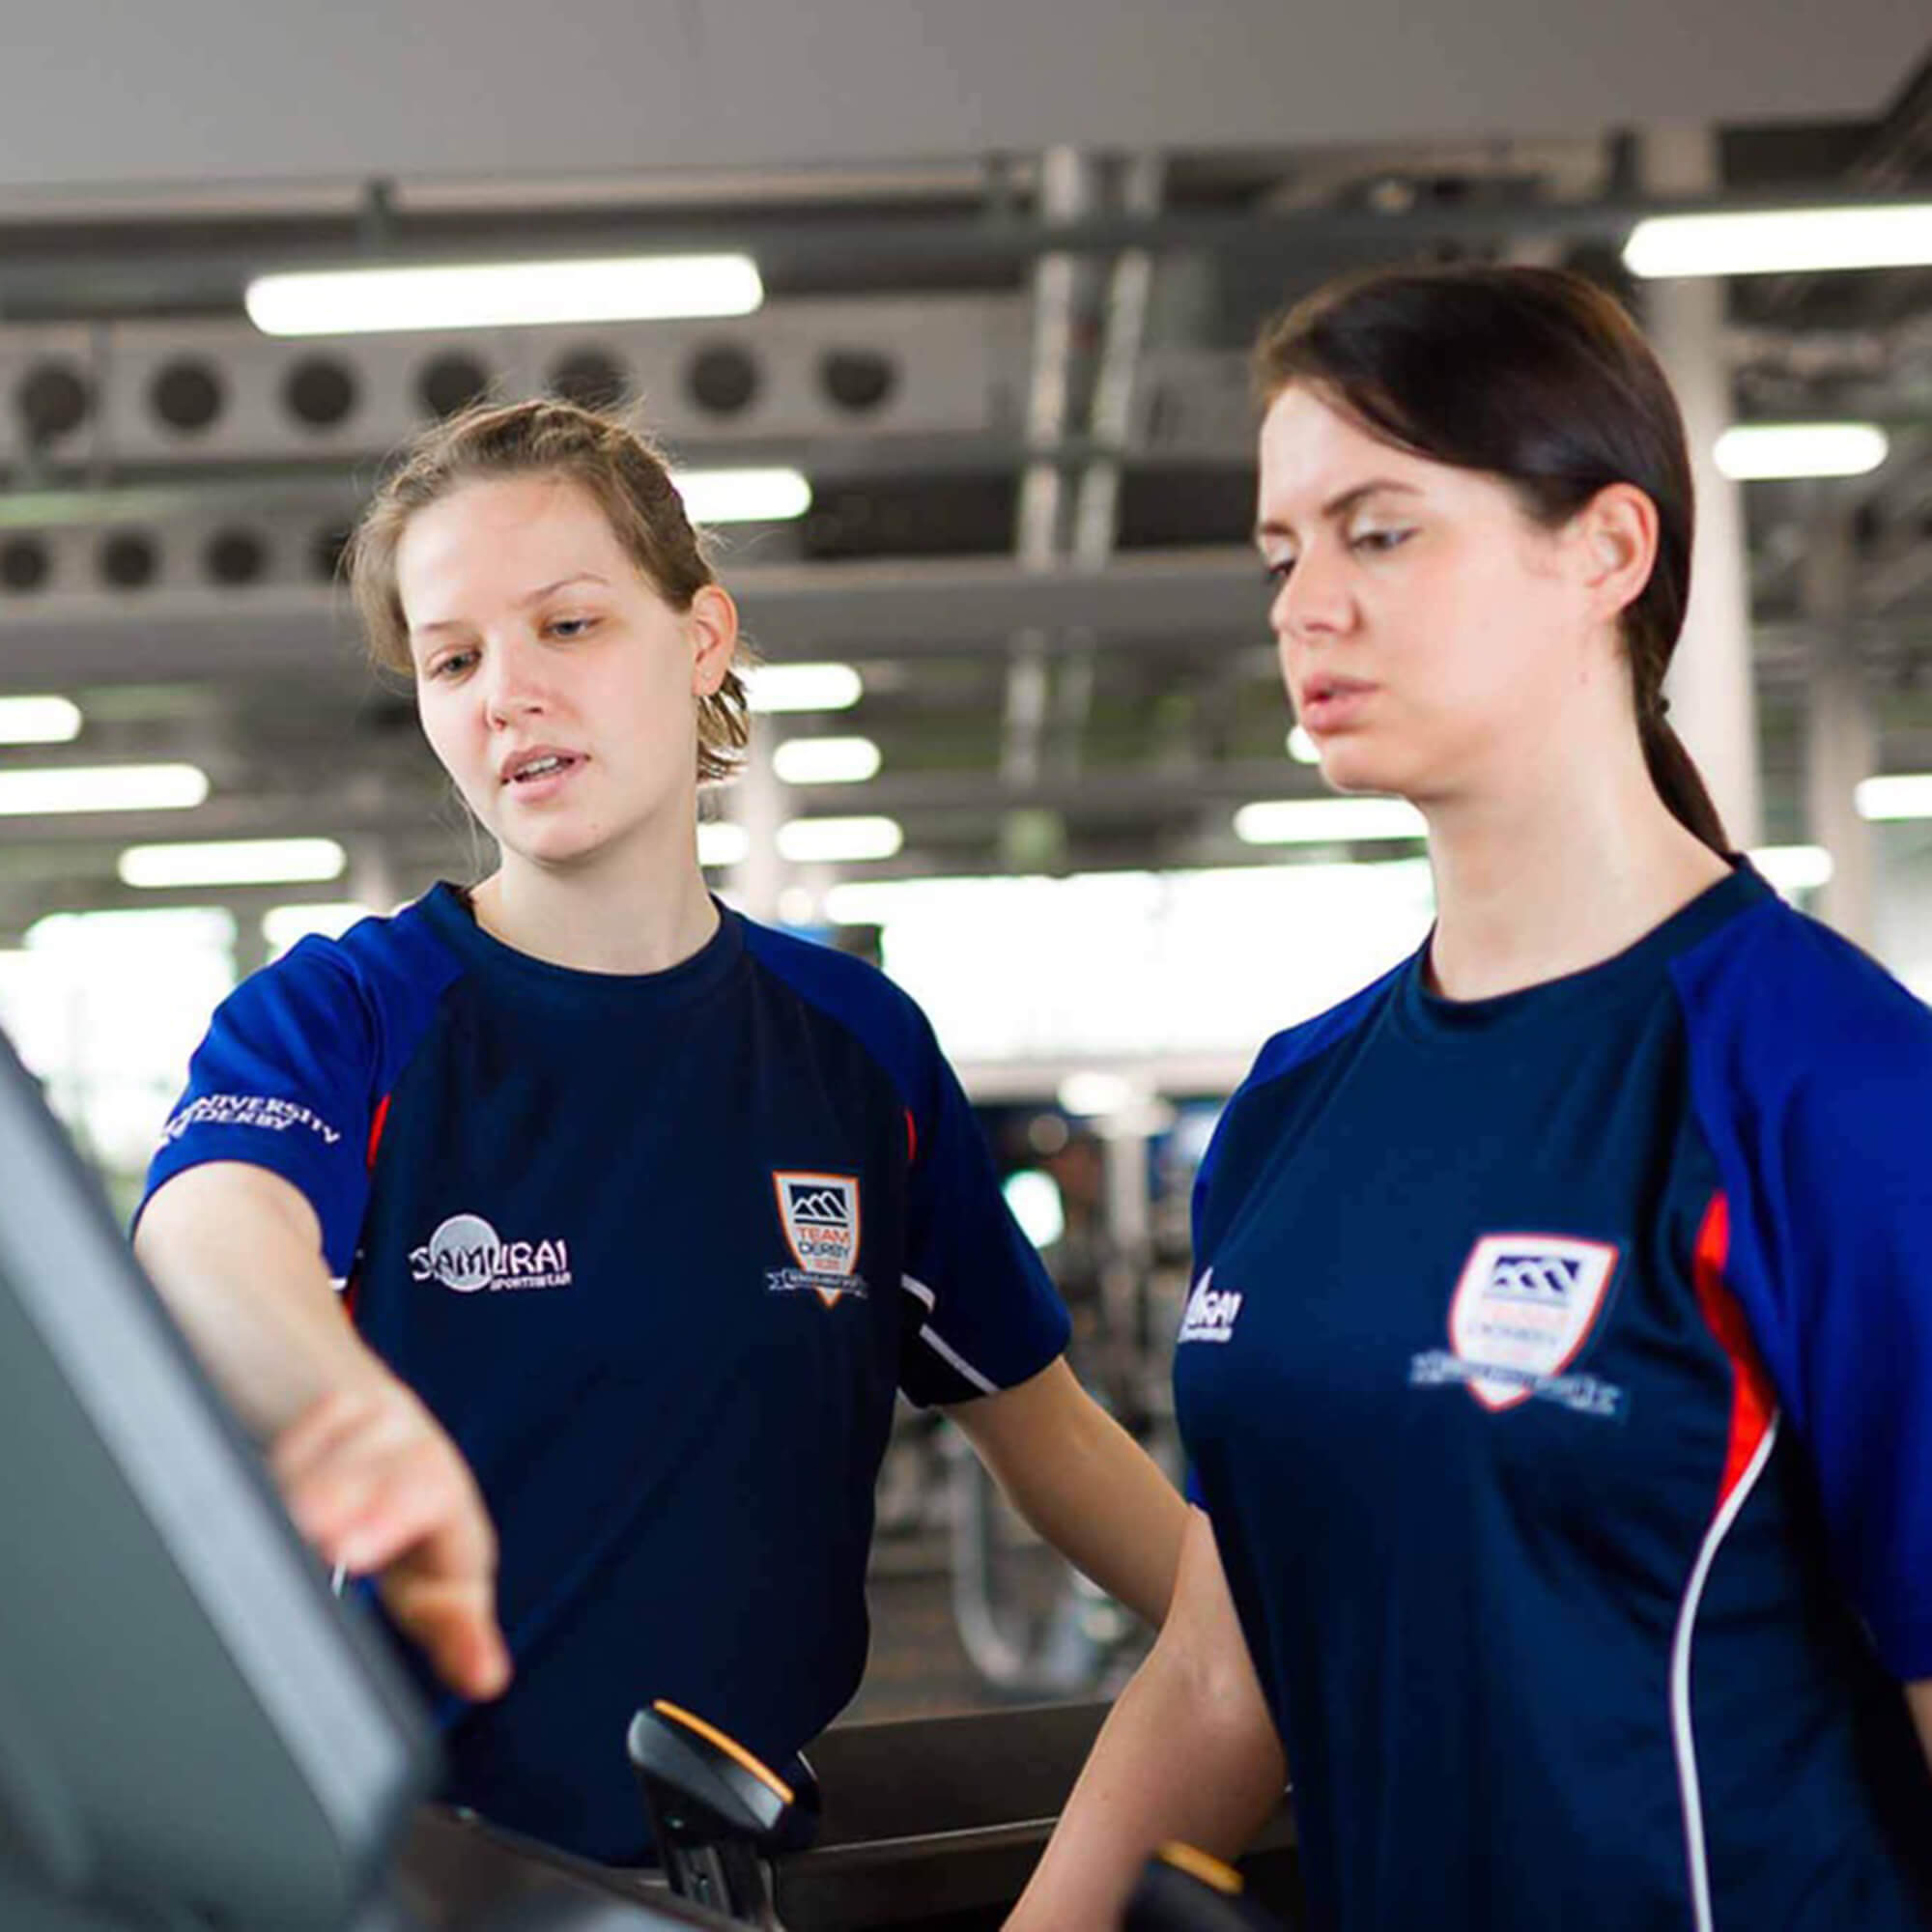 A female student assisting another female student on a running machine.